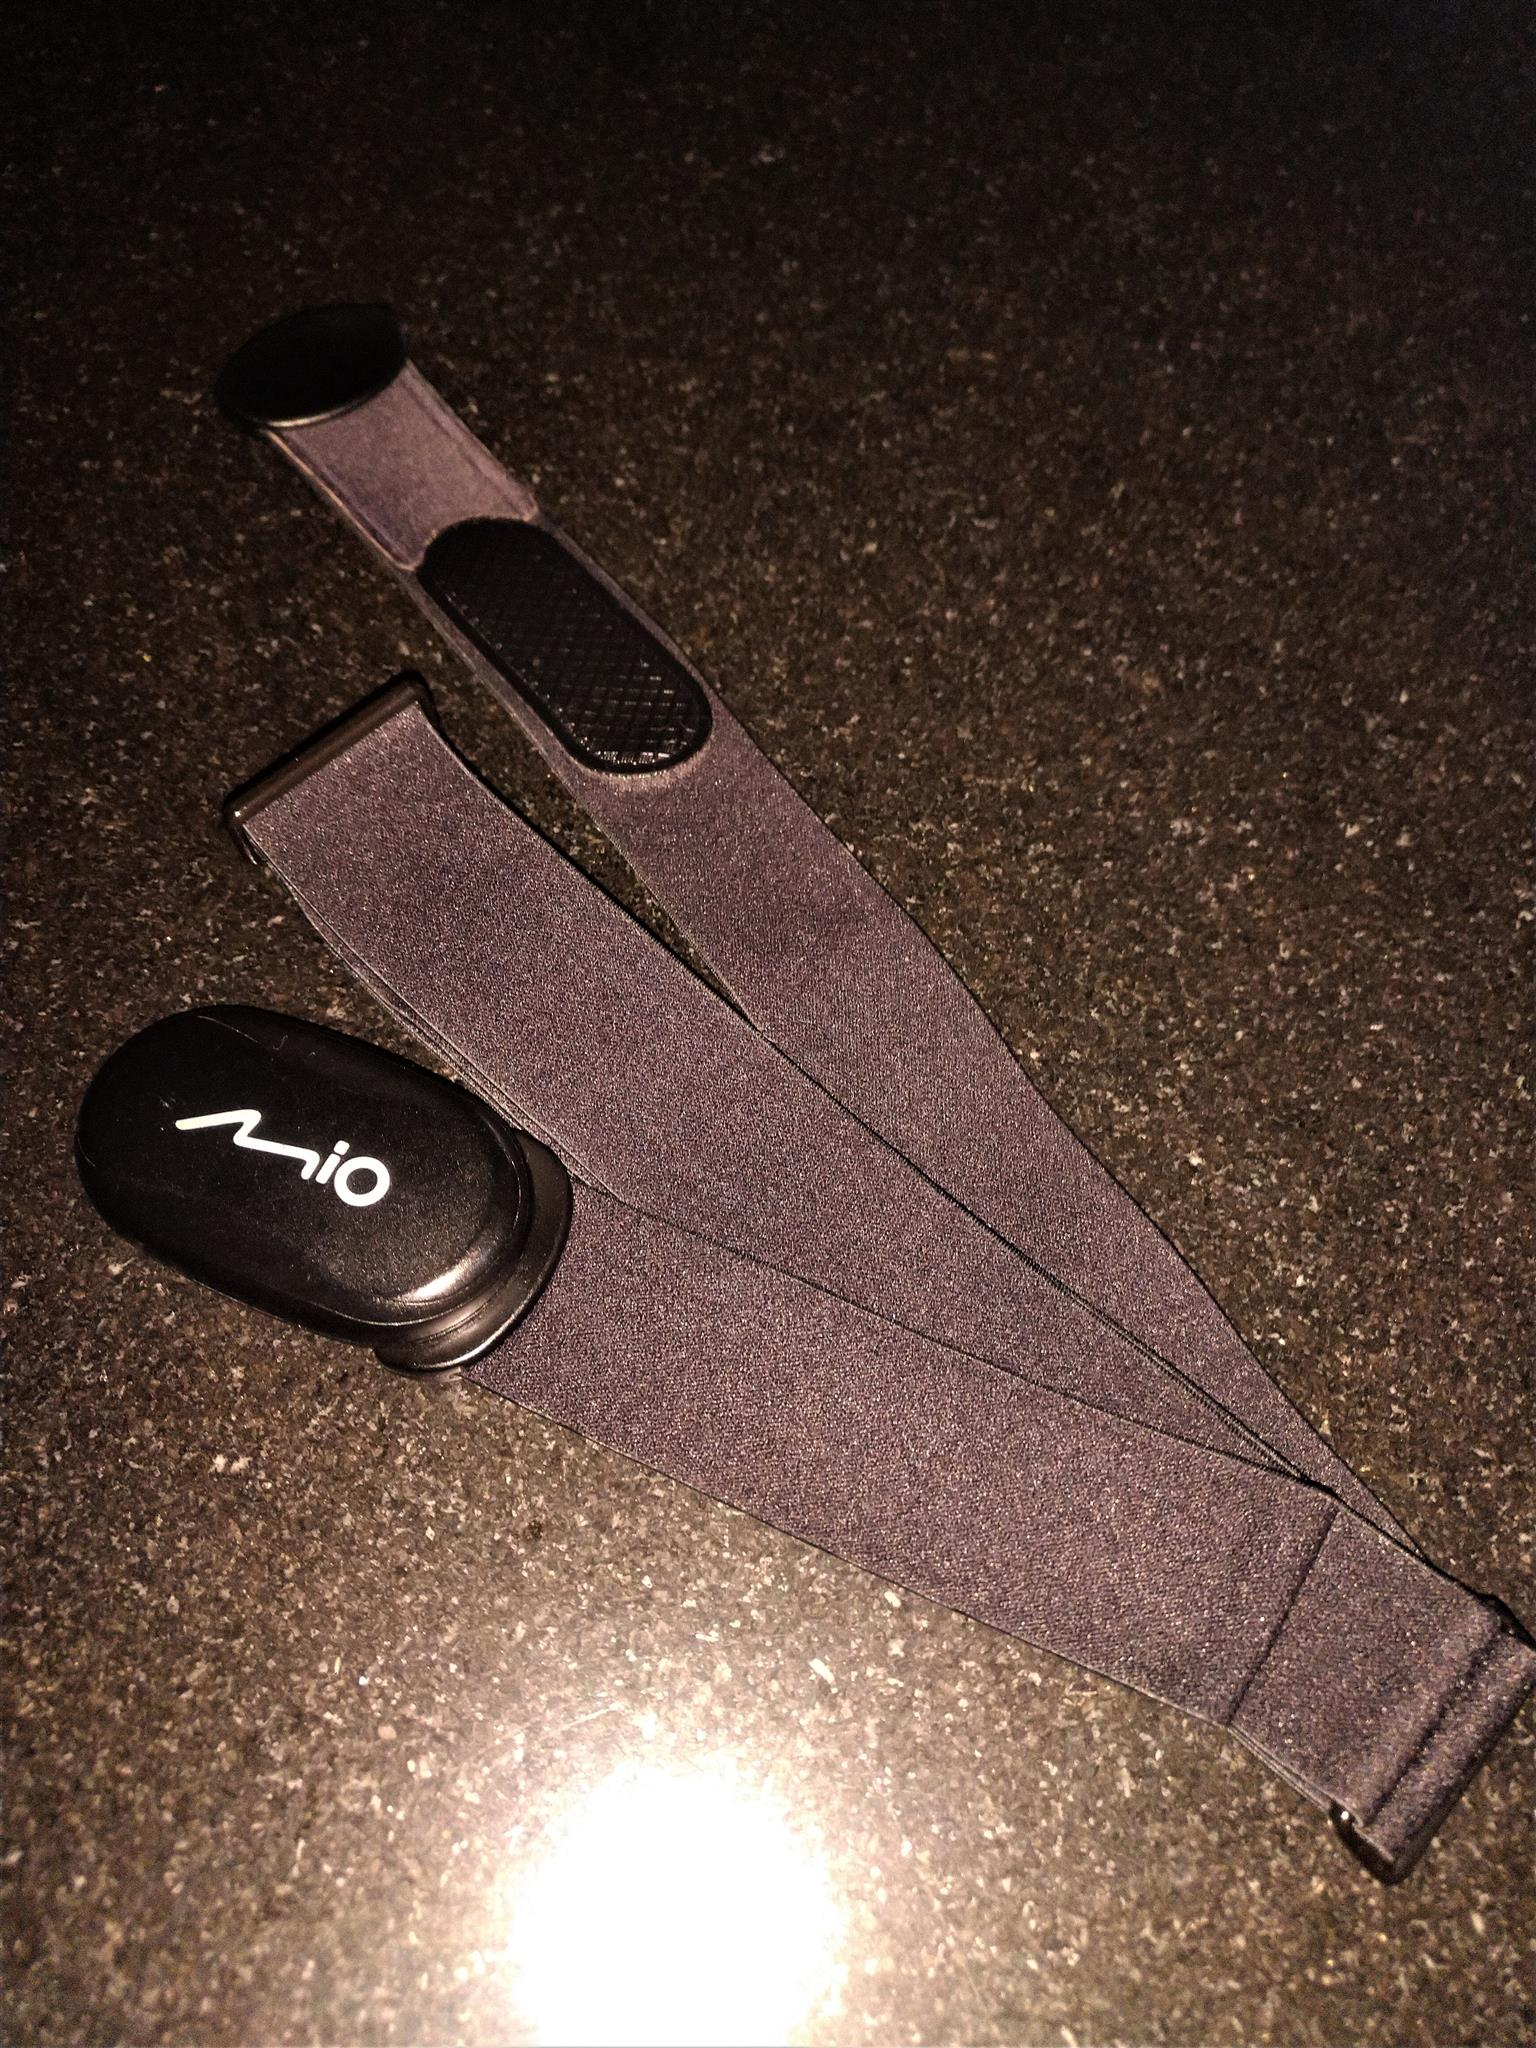 Mio heart rate monitor for sale